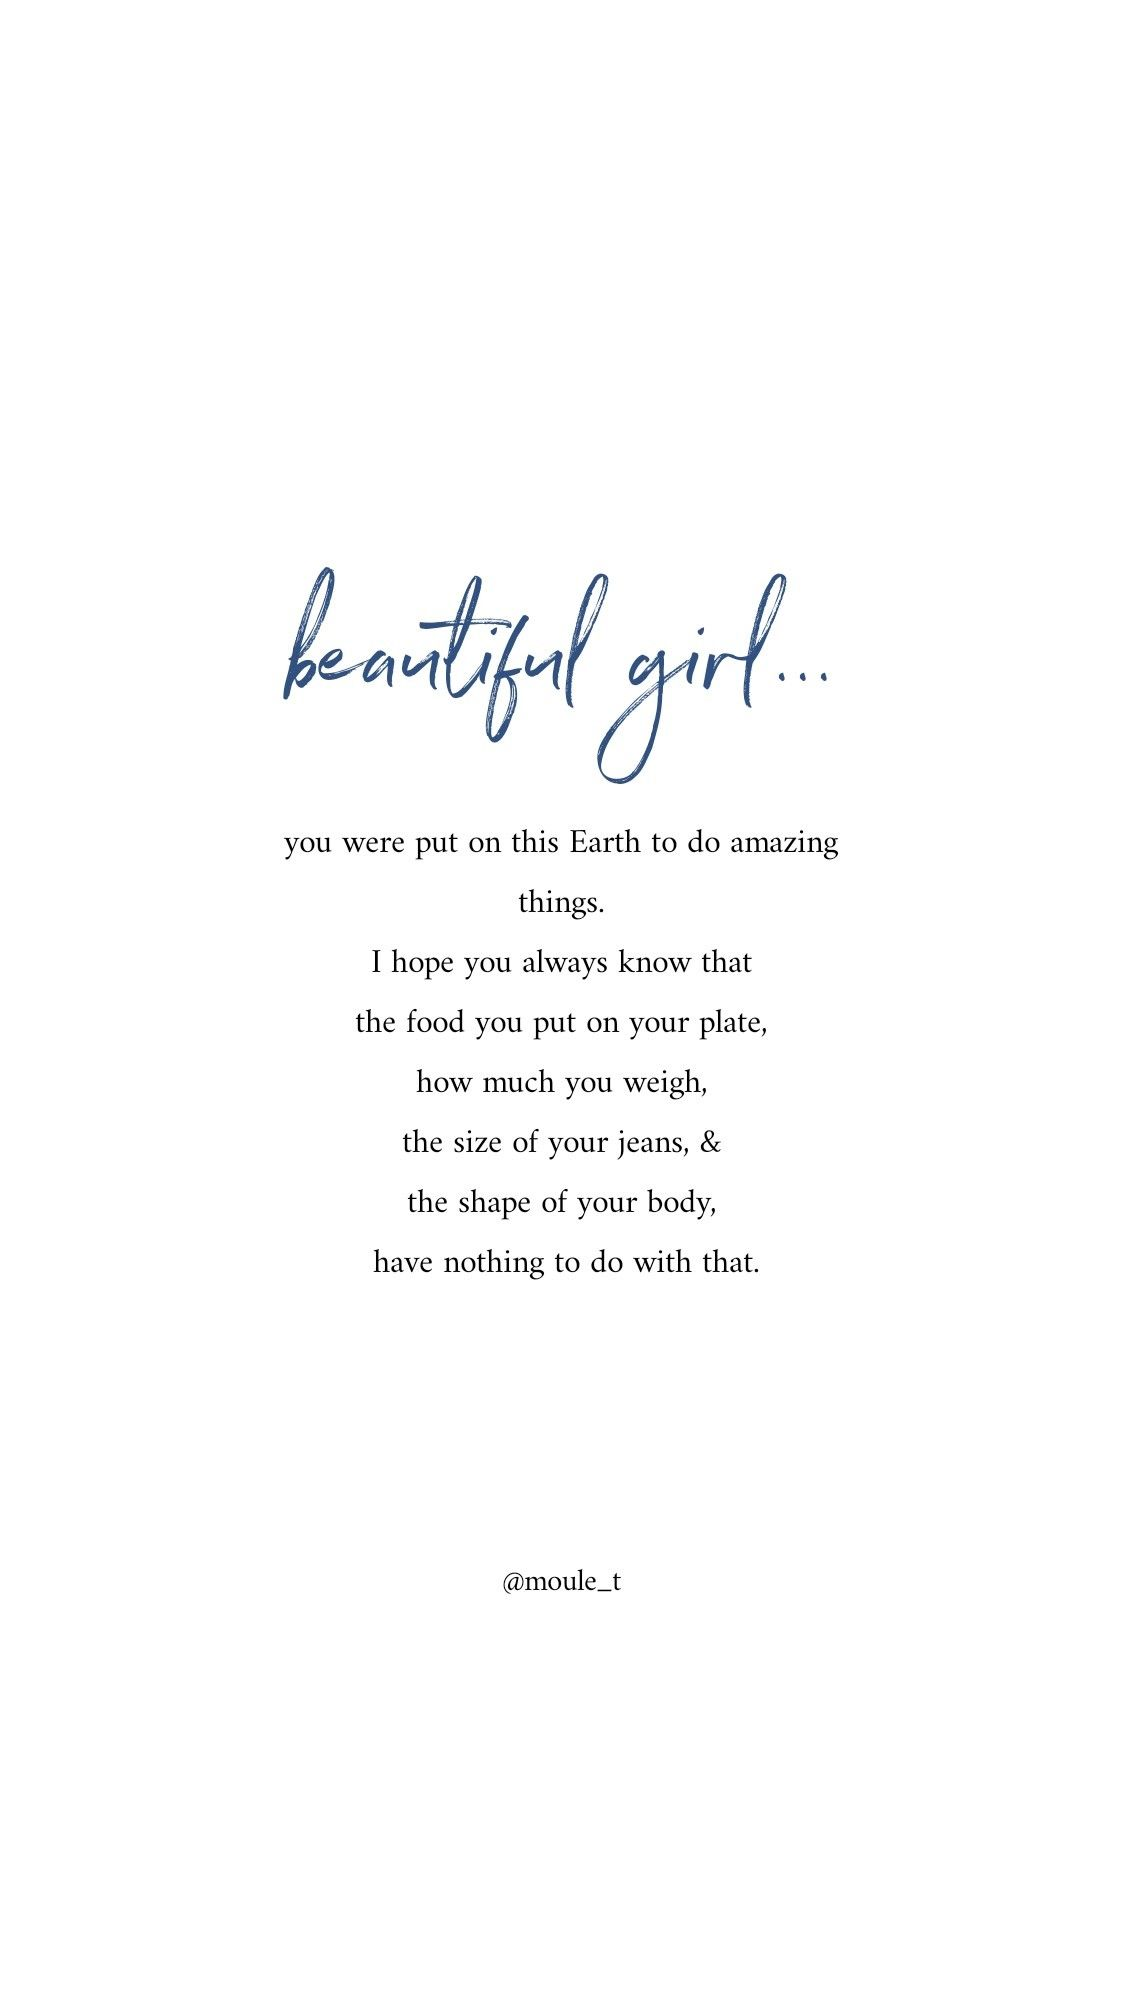 Beautiful girl, you were meant to do amazing things and your apperance has nothing to do with that.